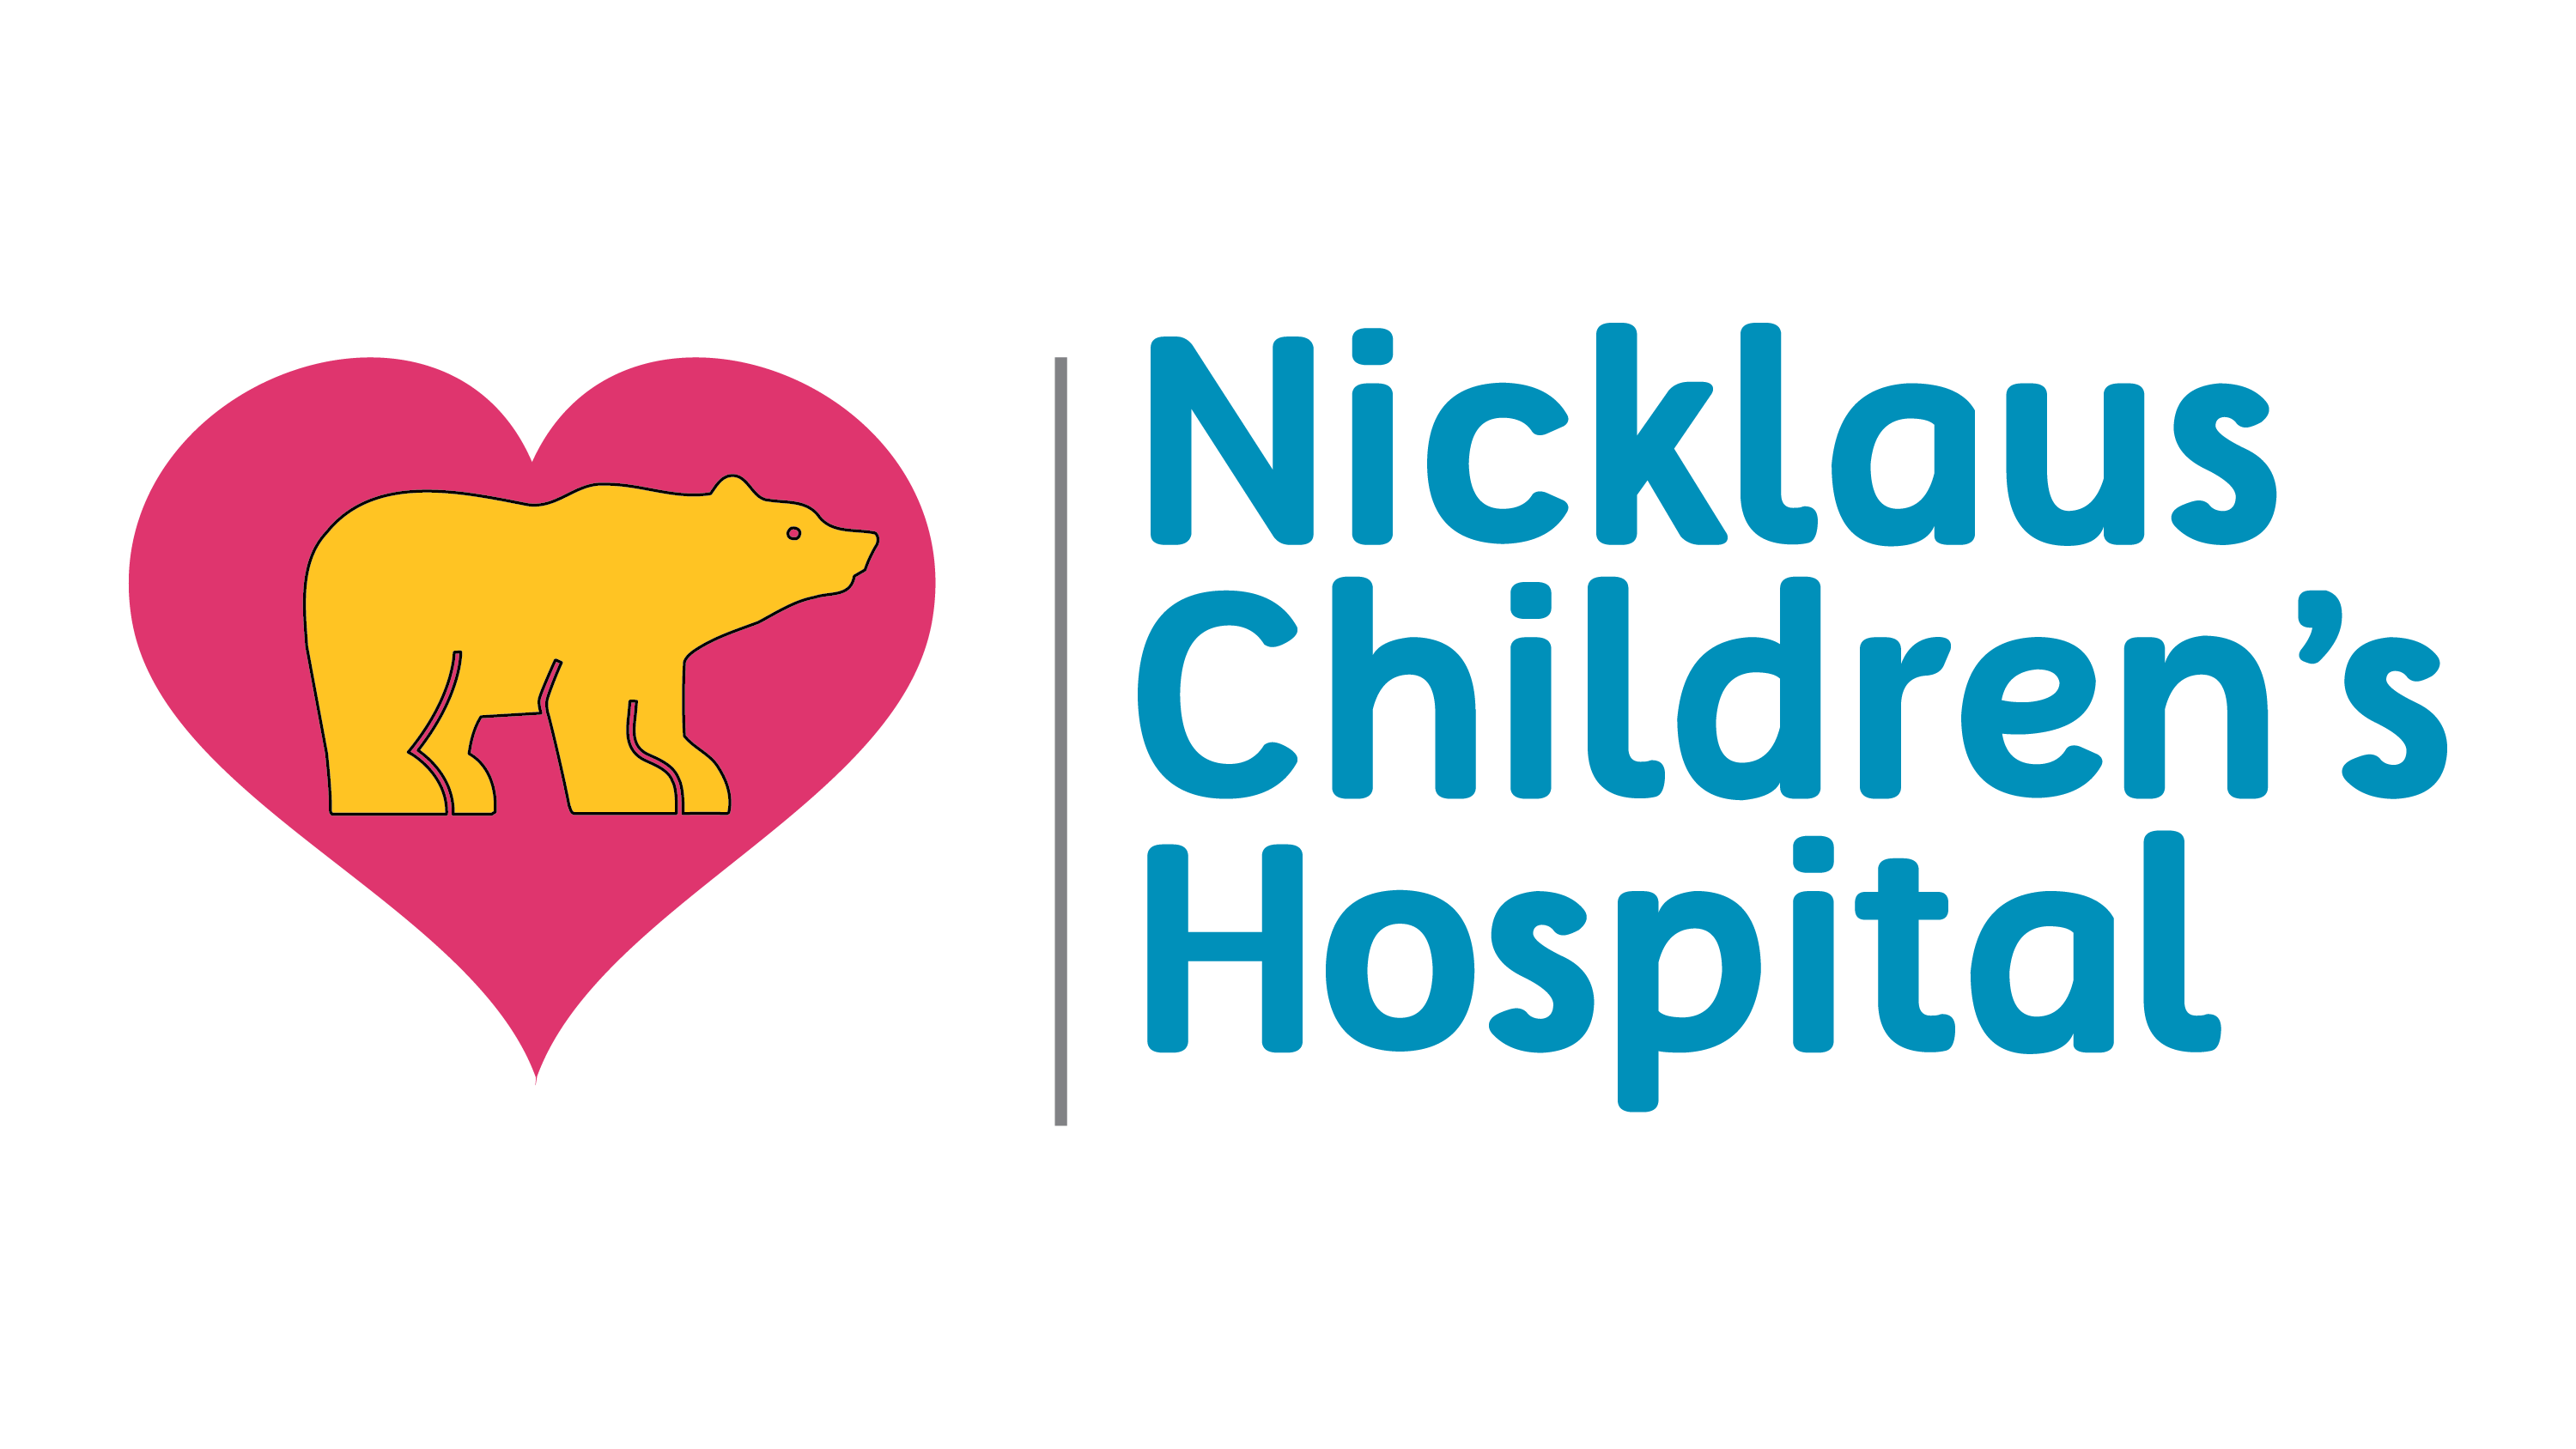 Nicklaus Children's